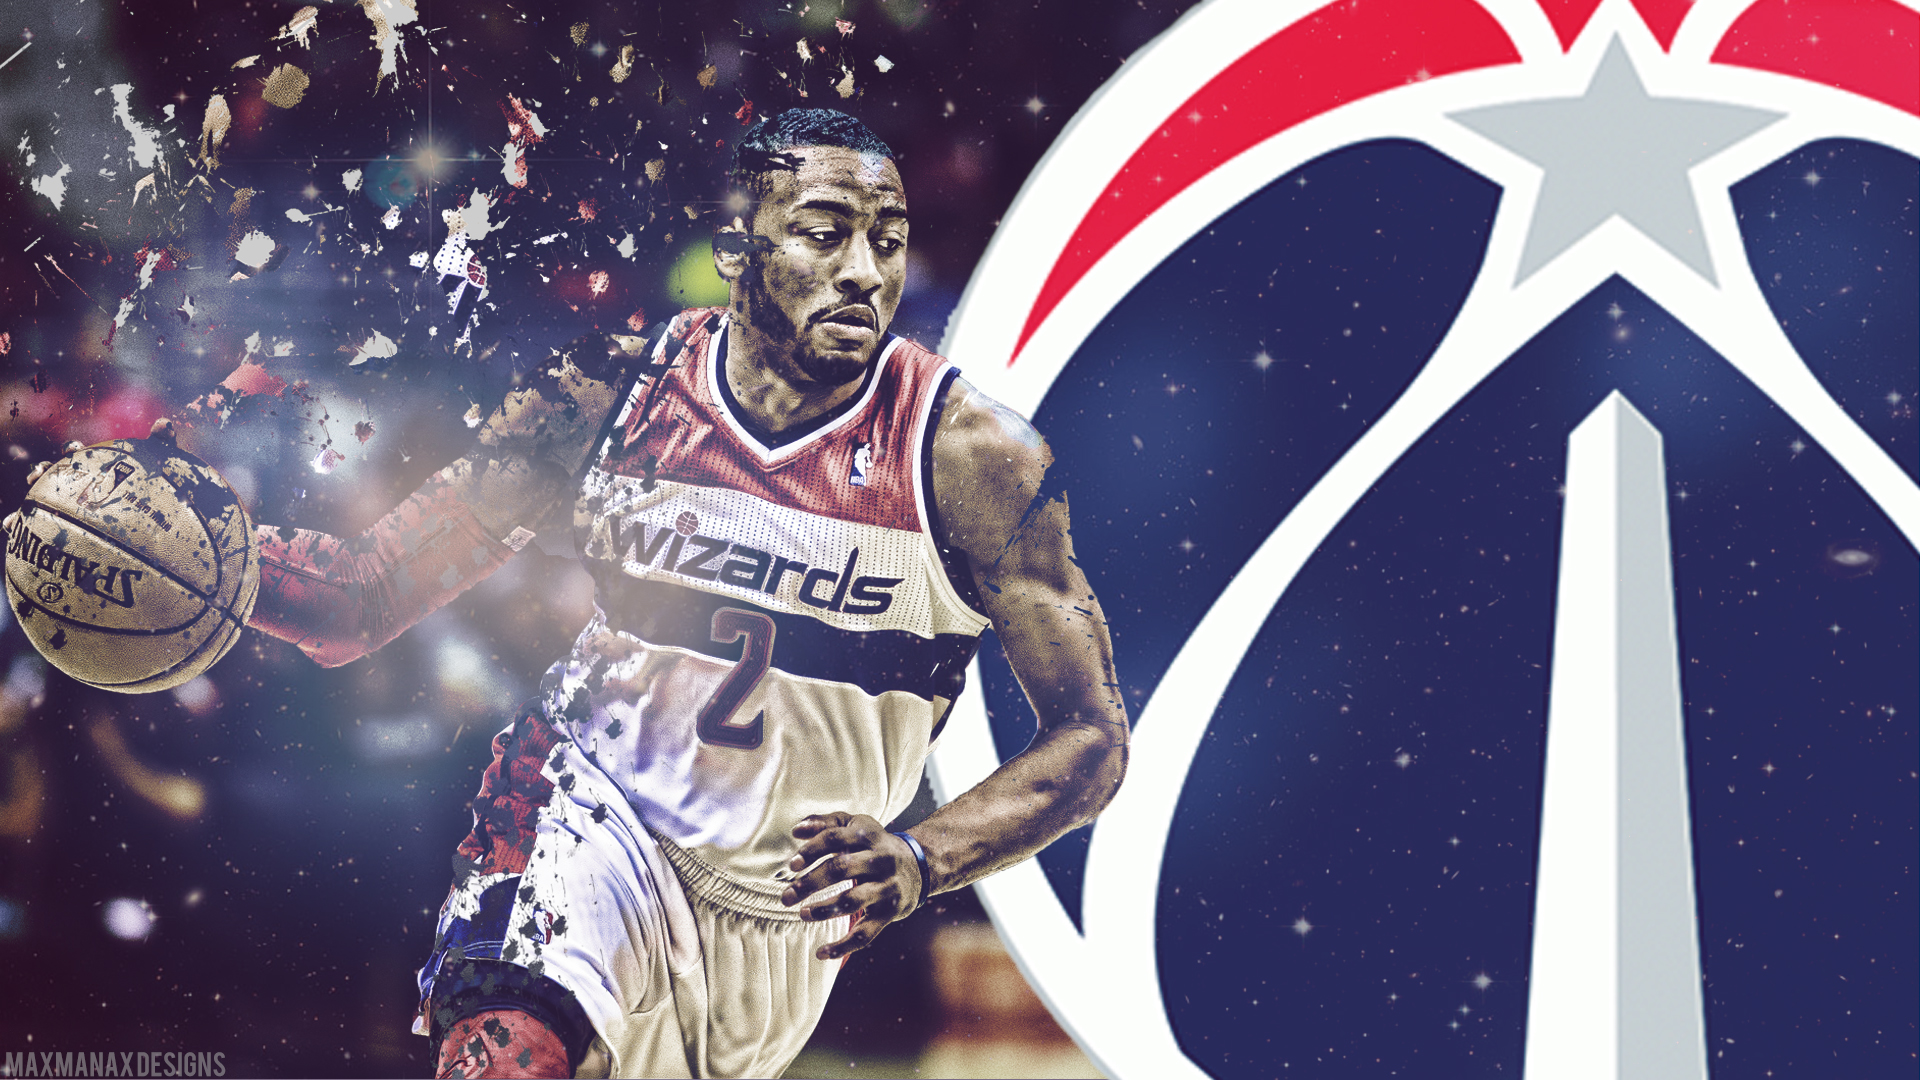 John wall wallpaper 2015